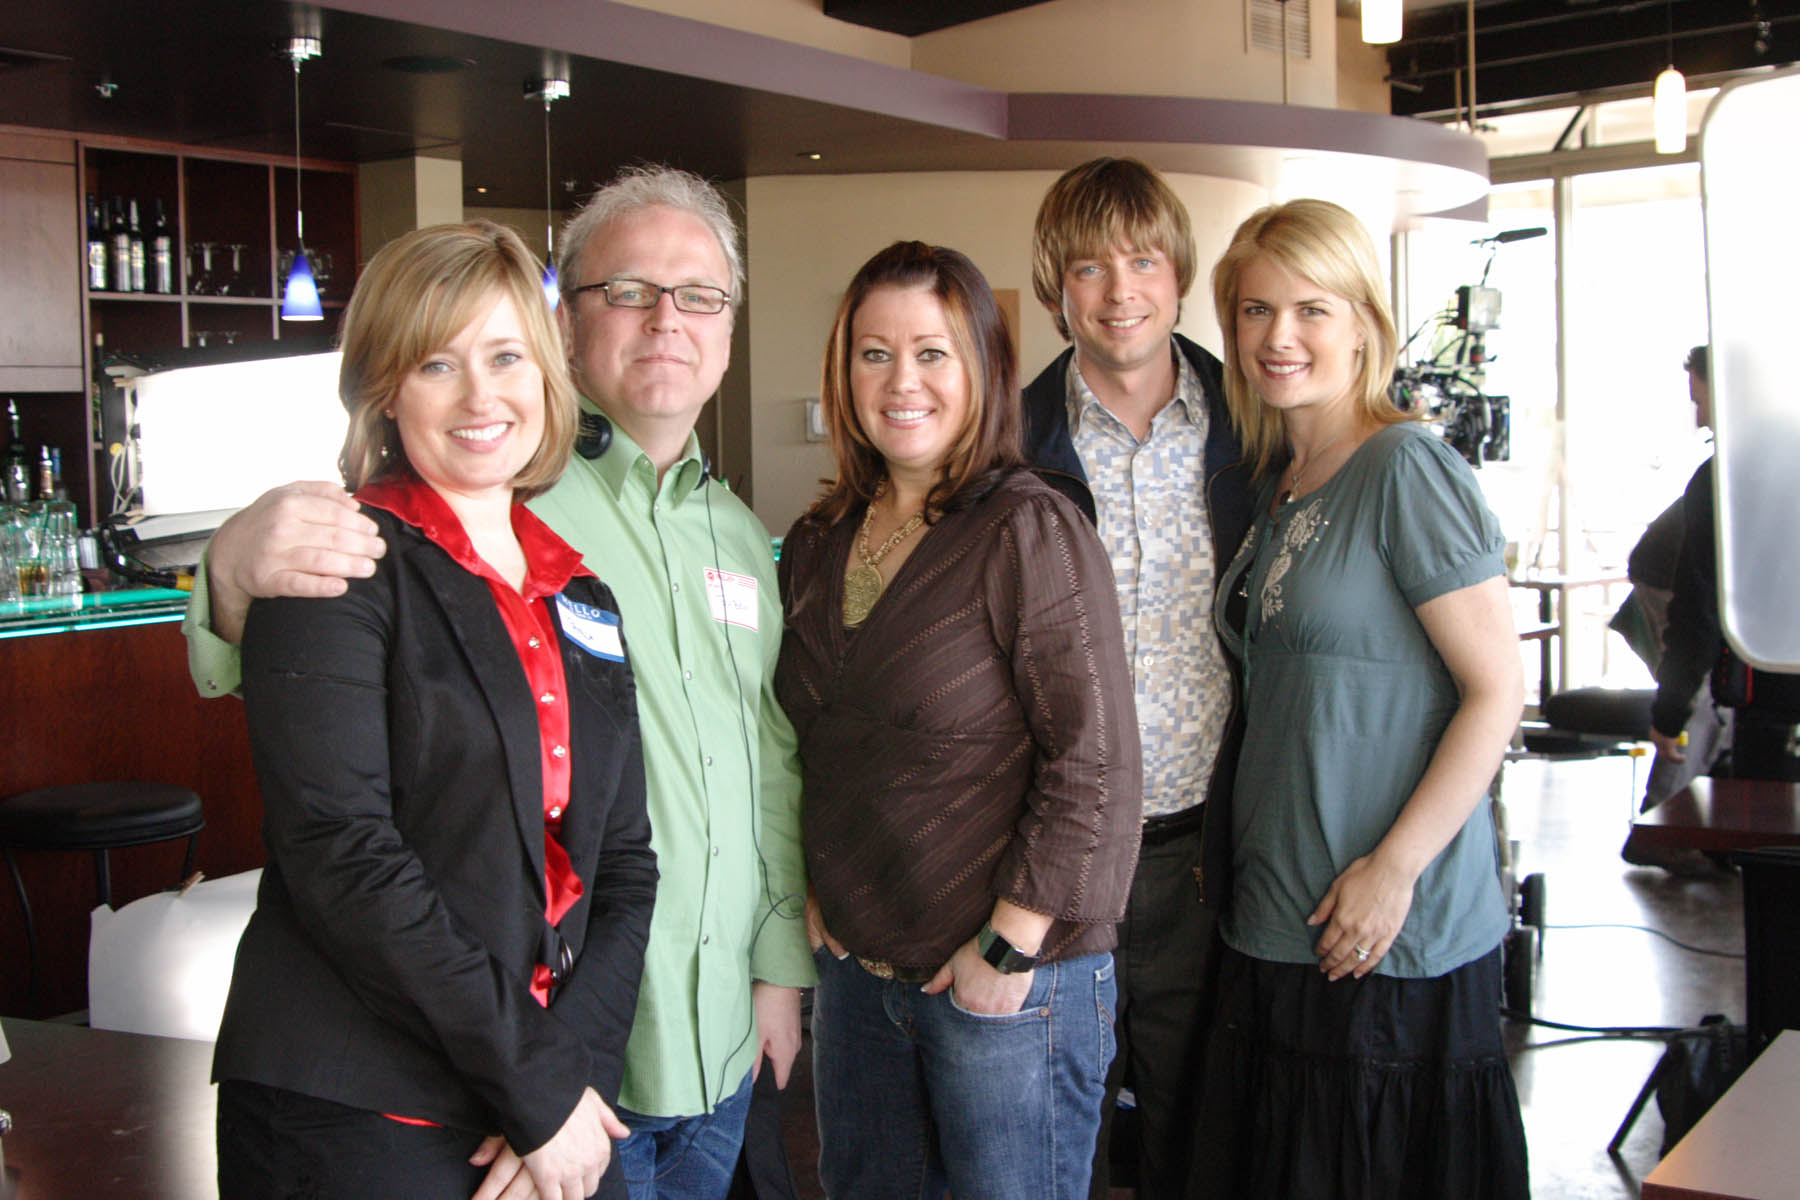 ROBSON ARMS, SEASON 2  TELEVISION SERIES  FROM LEFT TO RIGHT: WENDY RUSSELL, DIRECTOR GARY HARVEY, JANN ARDEN, HAIG SUTHERLAND, TAMARA TAGGART